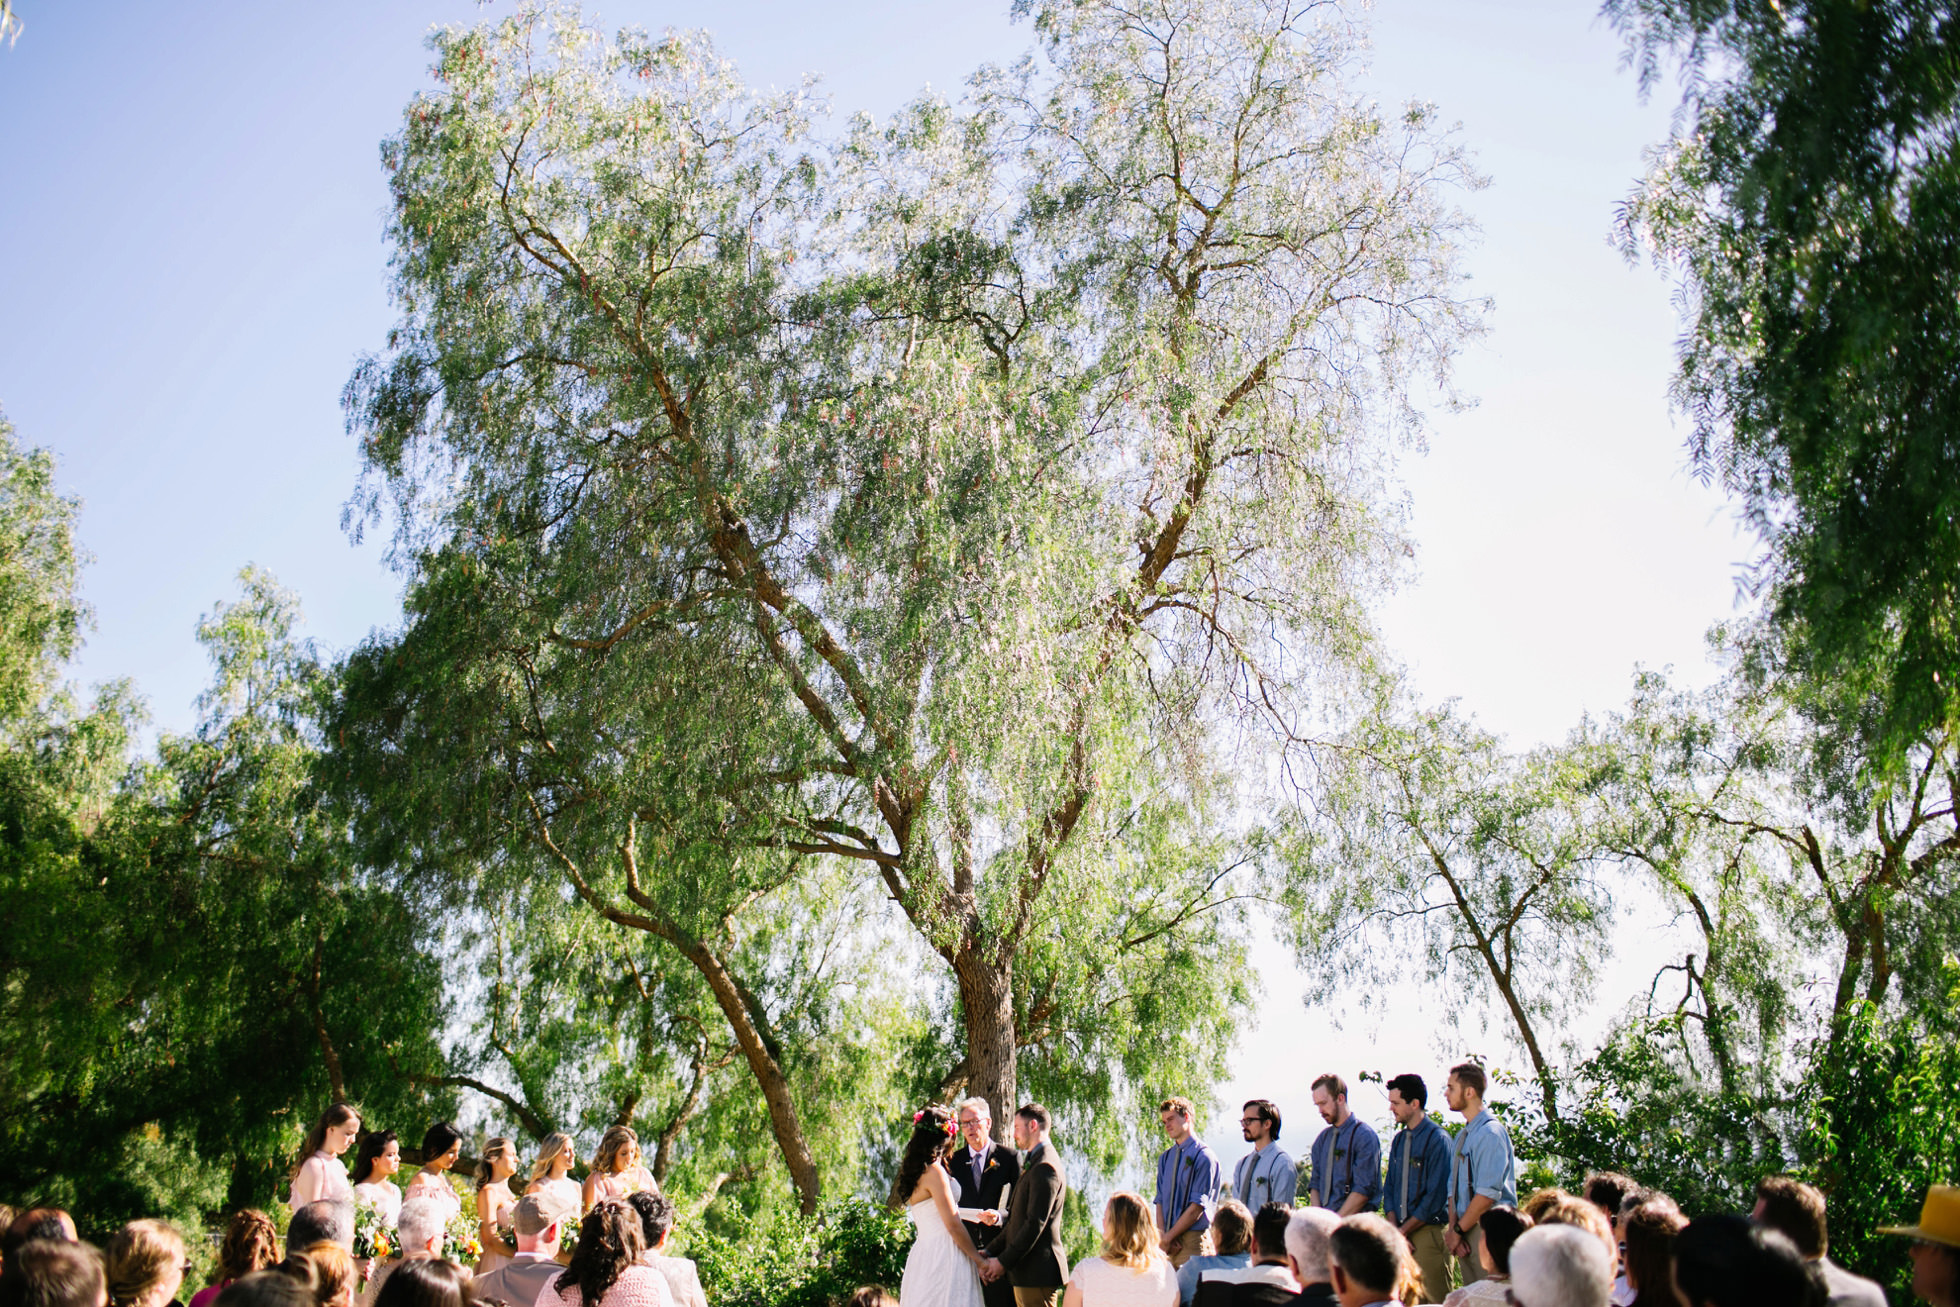 Palos Verdes Southern California Destination Wedding | brittneyraine.com 0000